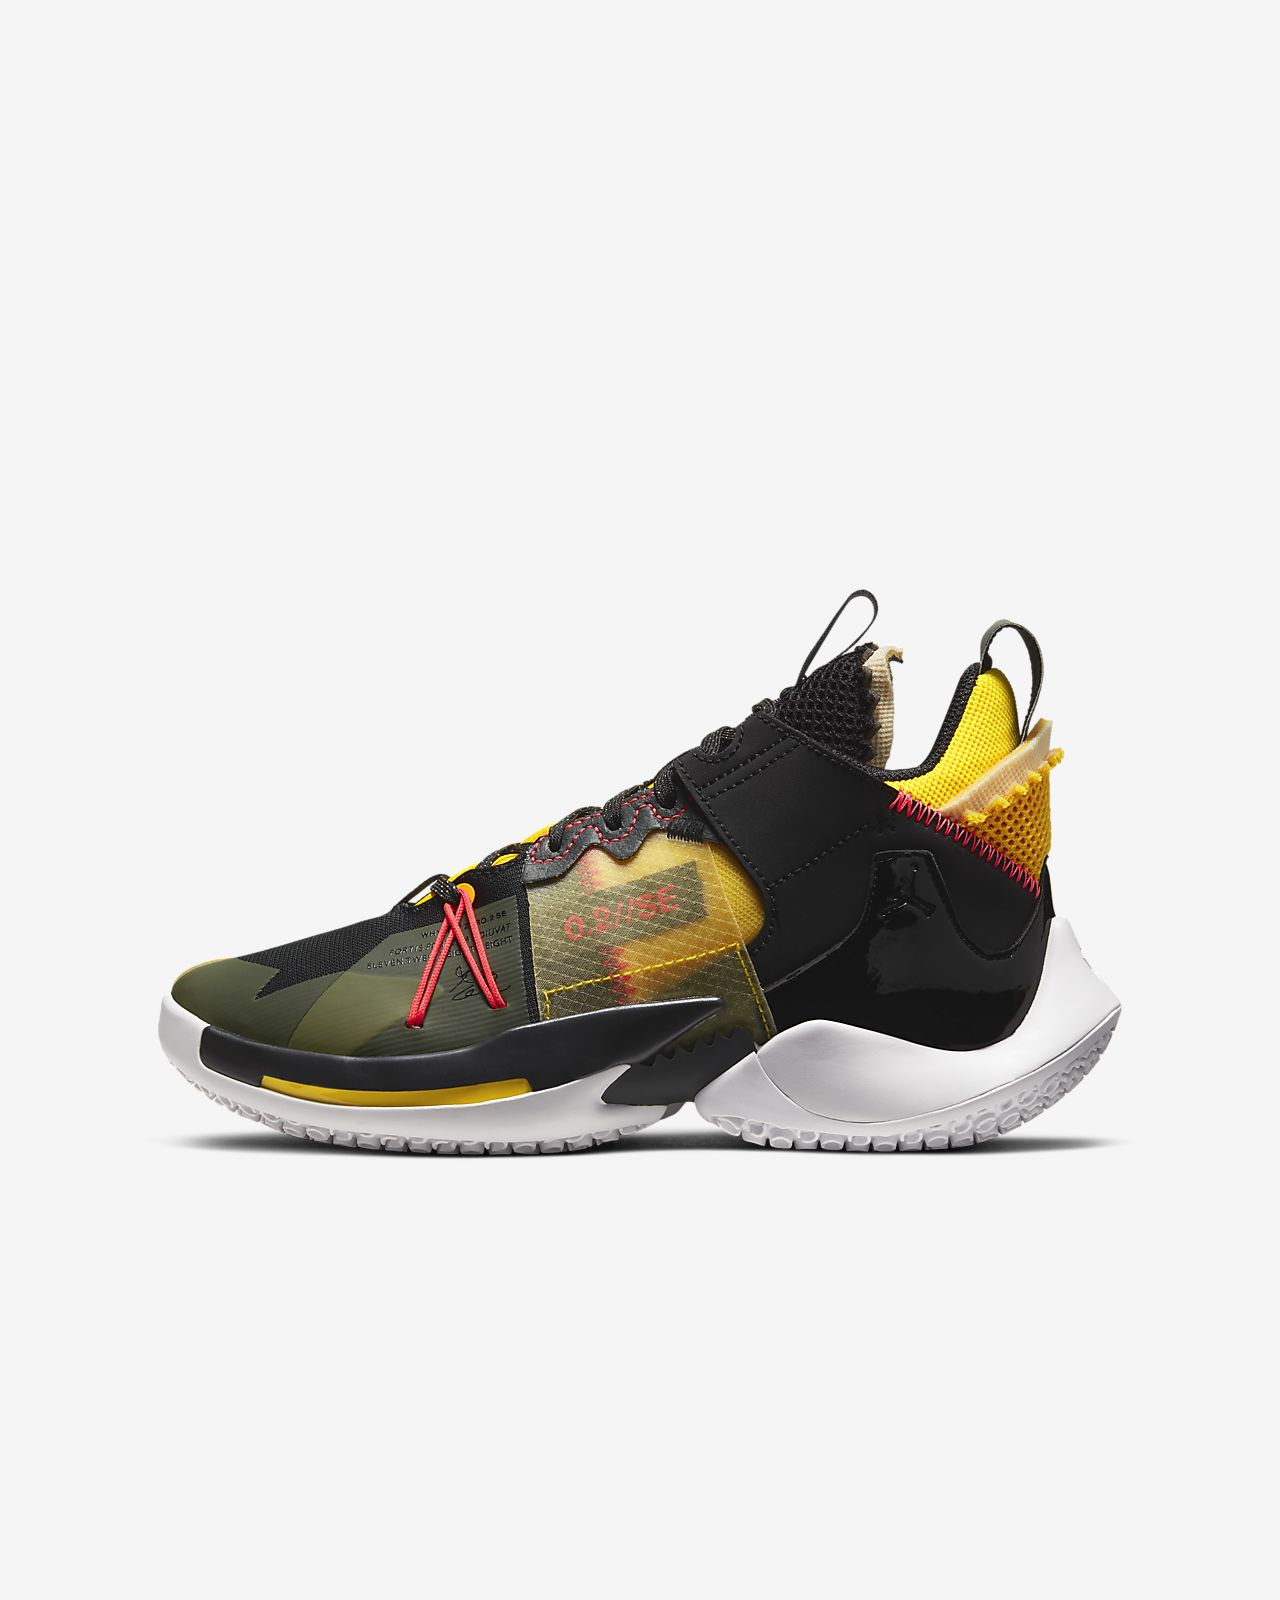 Jordan 'Why Not?' Zer0.2 SE Older Kids' Basketball Shoe